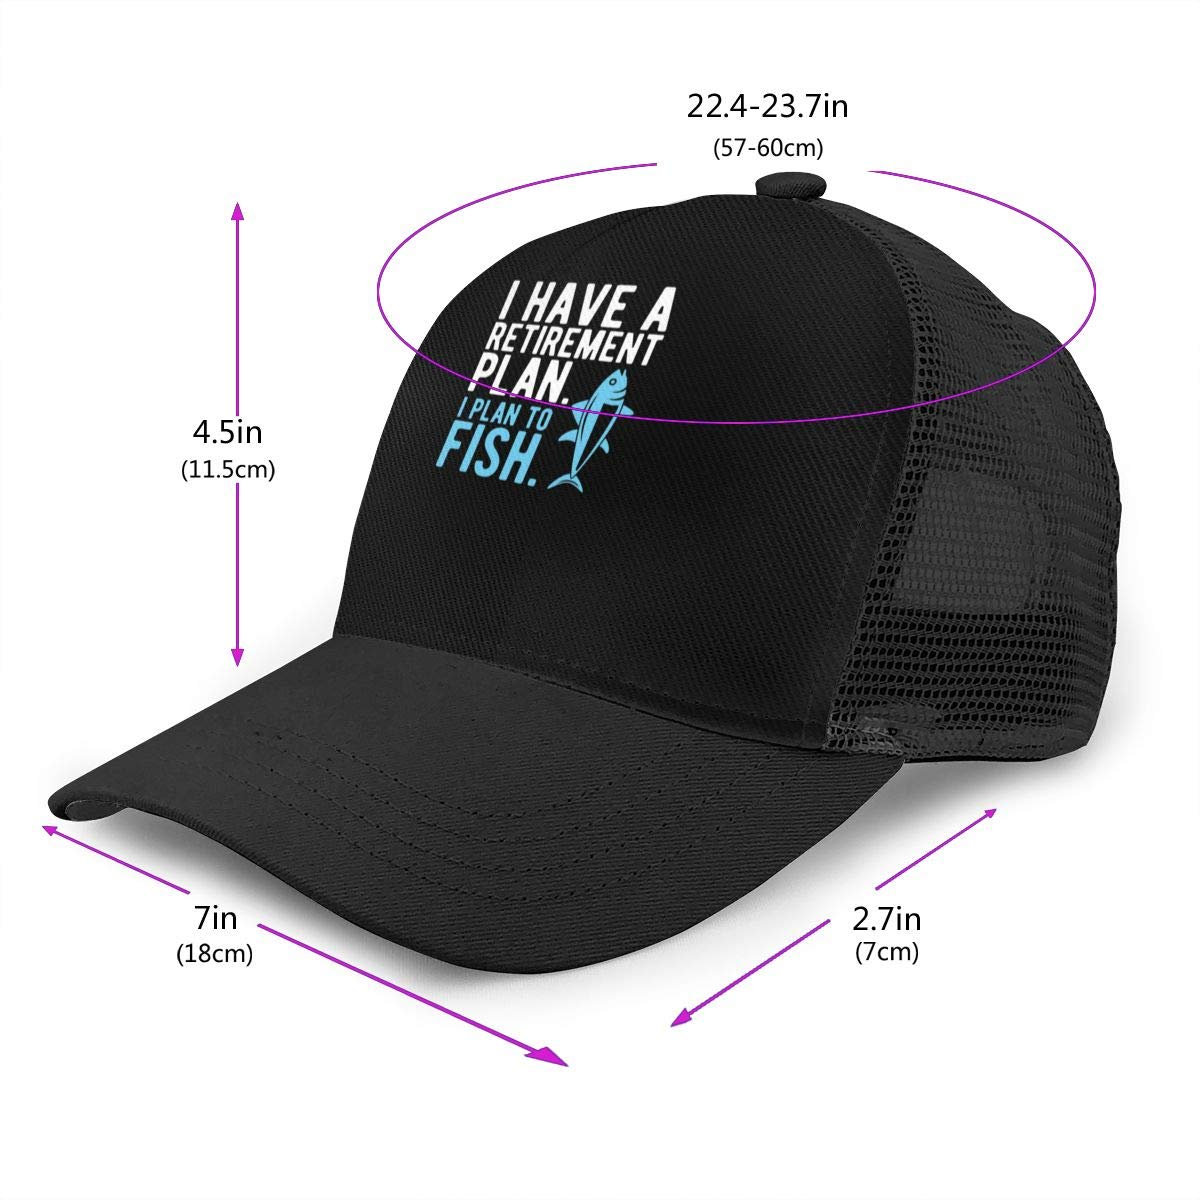 I Have A Retirement Plan I Plan to Fish Logo Mesh Baseball Cap Dad Hat Adjustable Size Ventilation Sunscreen Cap